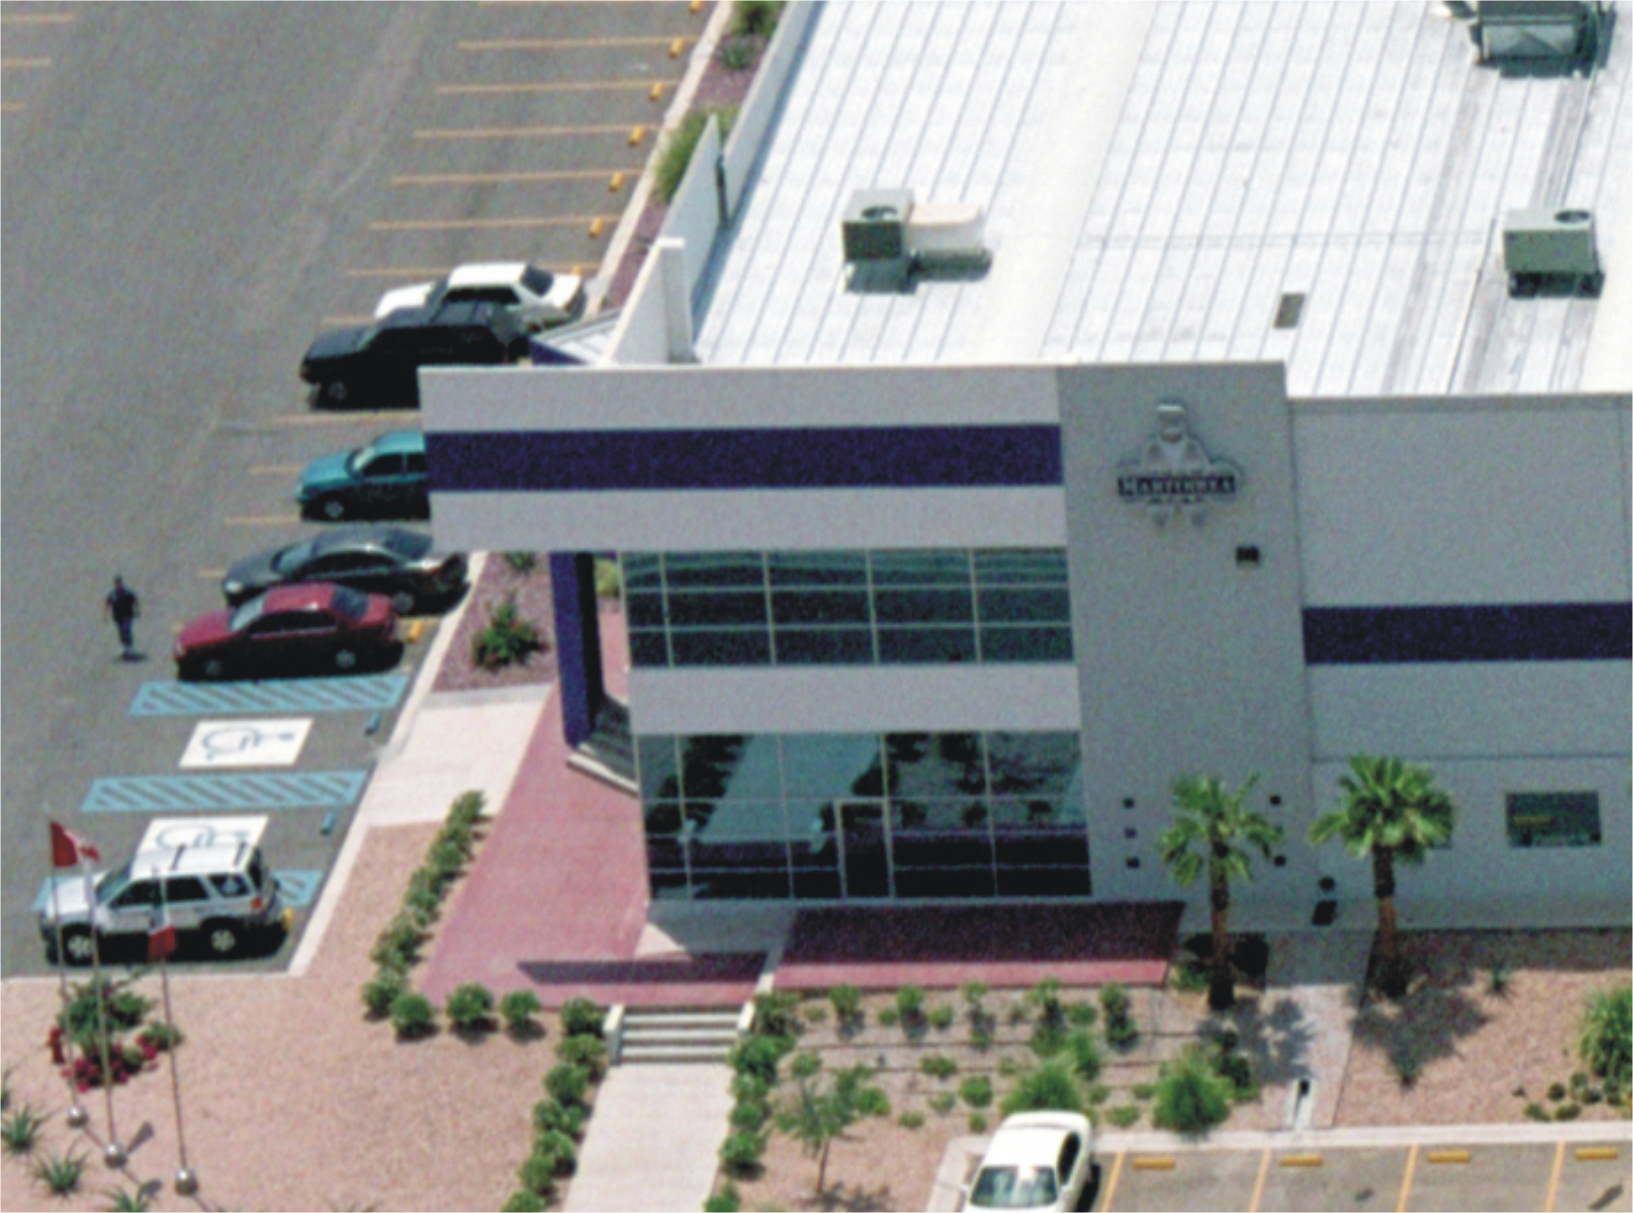 Aerial shot of Martin Rea facility in Hermosillo, Sonora.